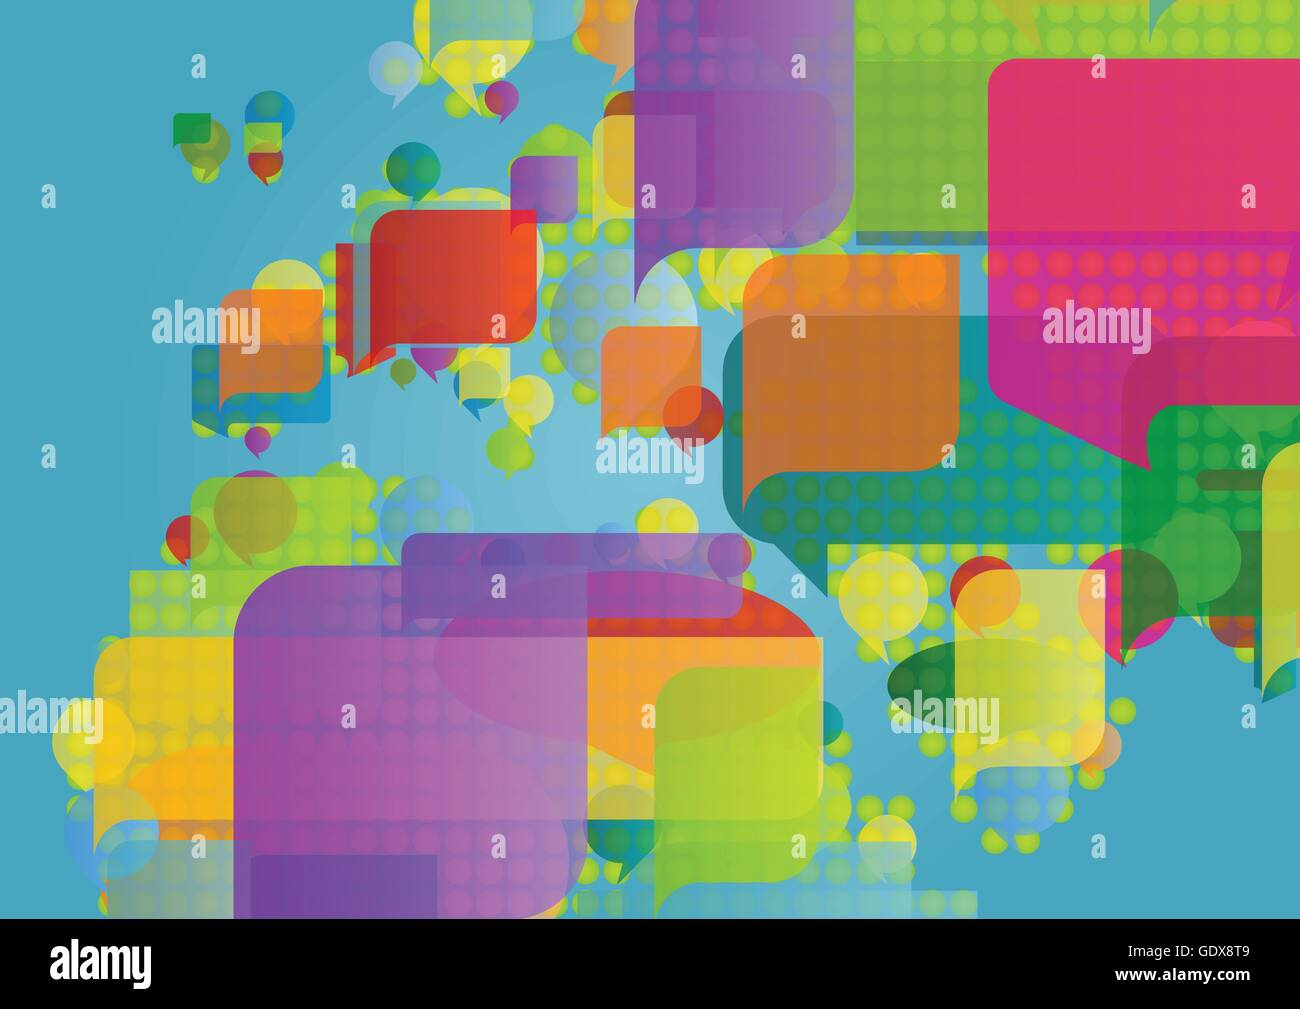 Europe north africa and middle east map made of colorful speech